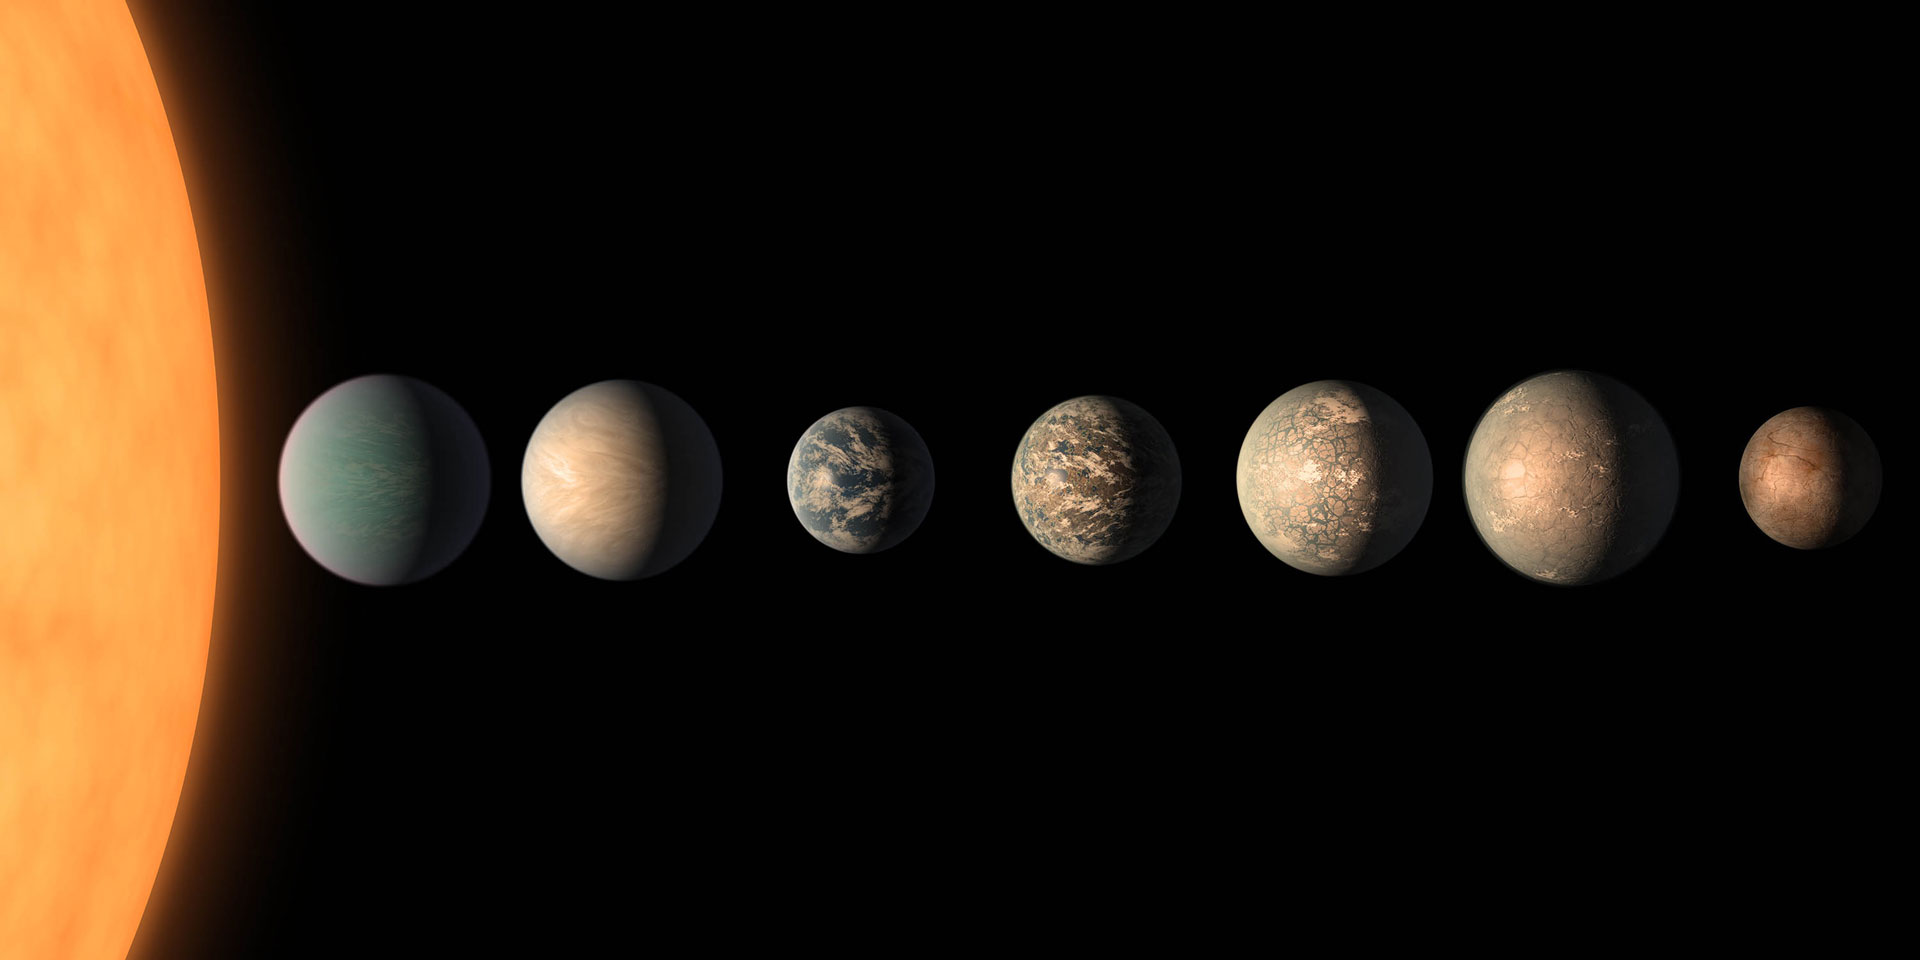 Trappist 1 Exposed To Heavyardment Of Charged Particles